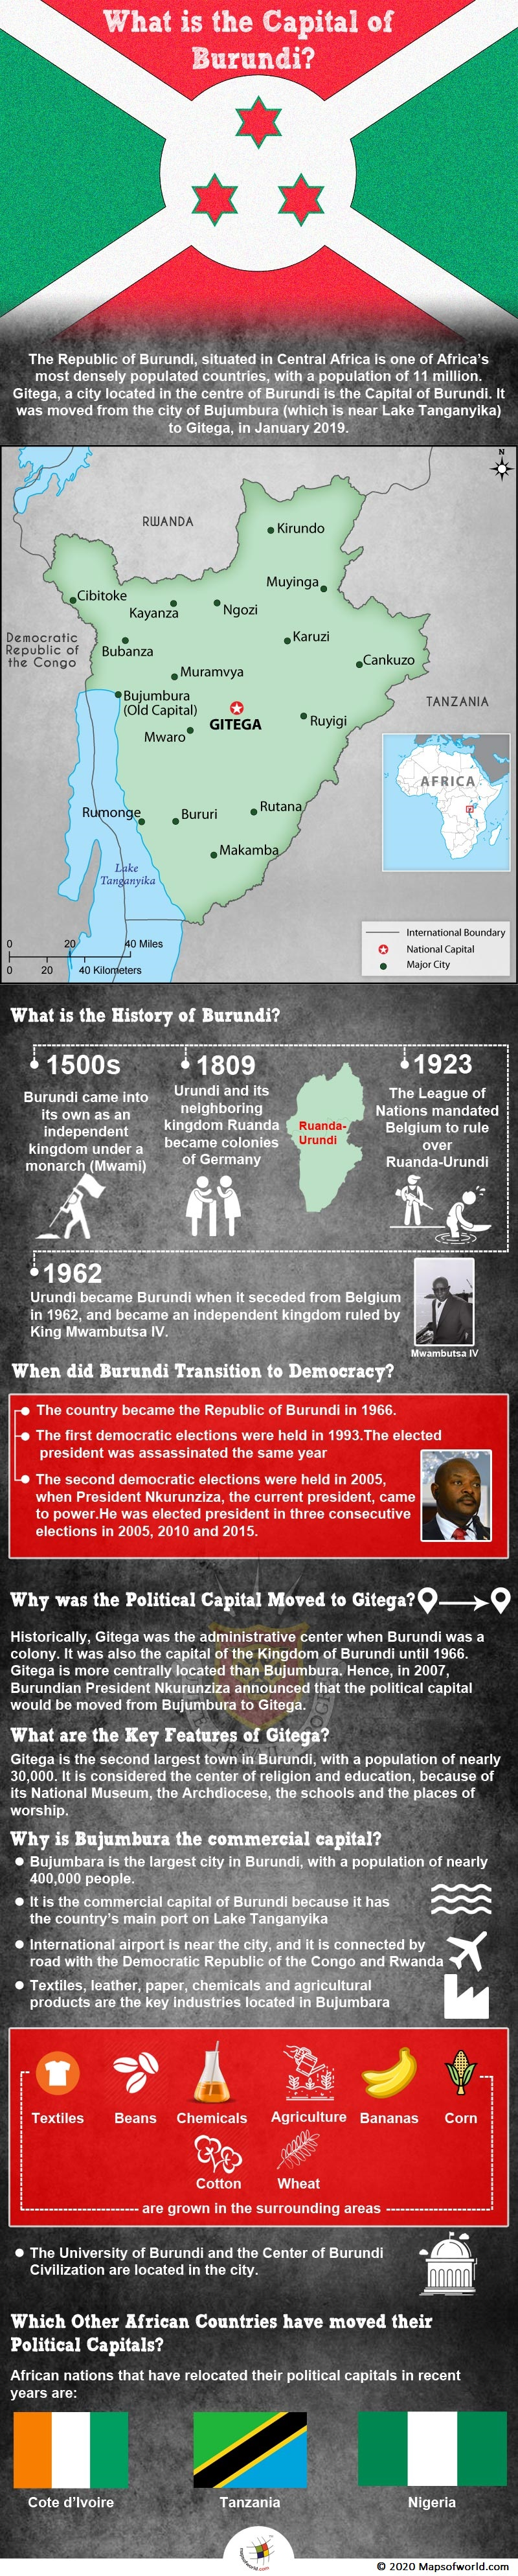 Infographic Giving Details on the Capital of Burundi